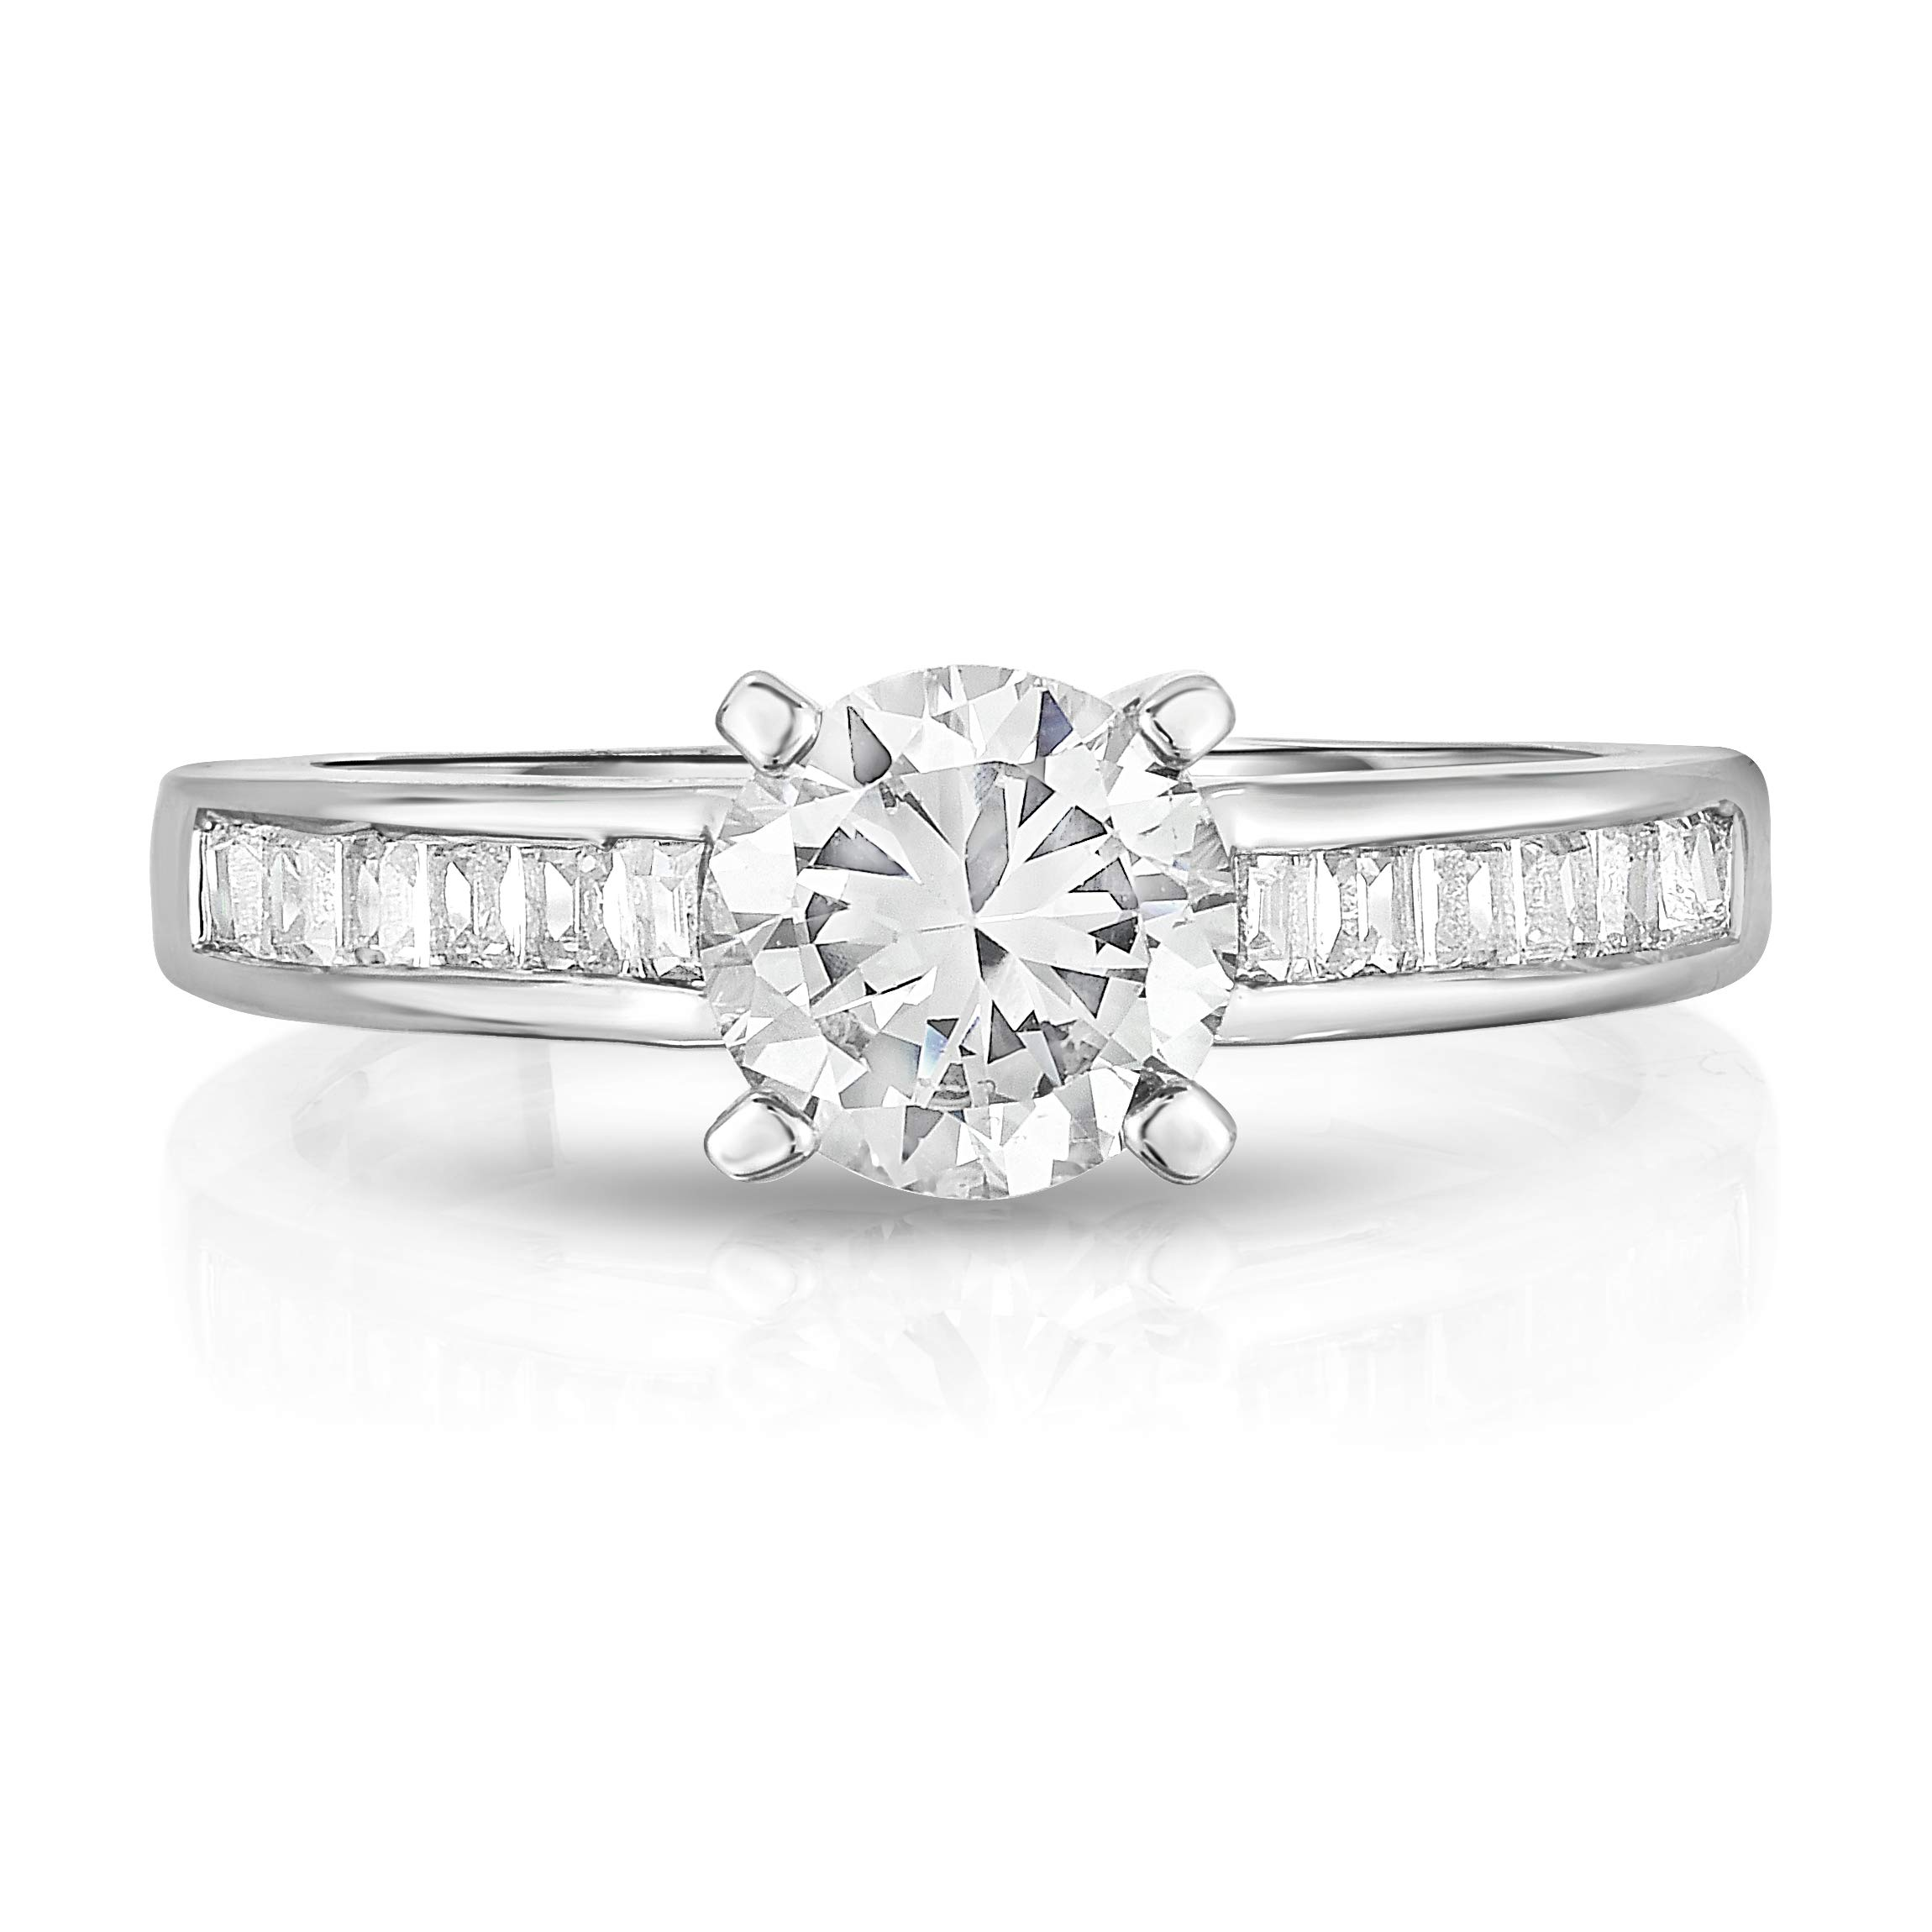 Chamonix jewelry Womens Silver Plated Round Cut Style Engagement Ring- Continuous Emerald Cut Stones Running Along the Band Of the Ring (9)